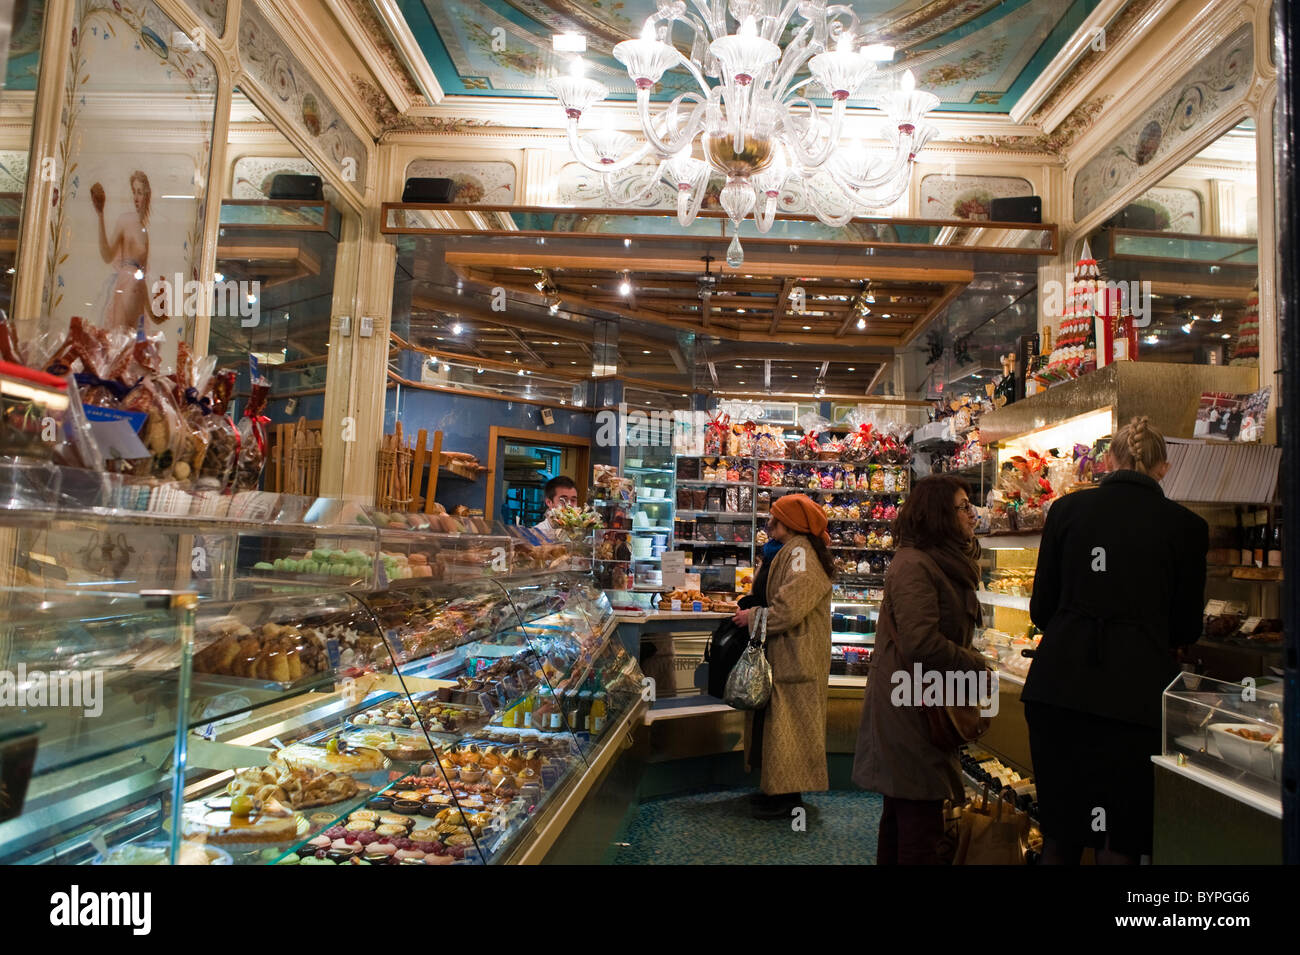 Paris france people inside french bakery shop french for Inside in french